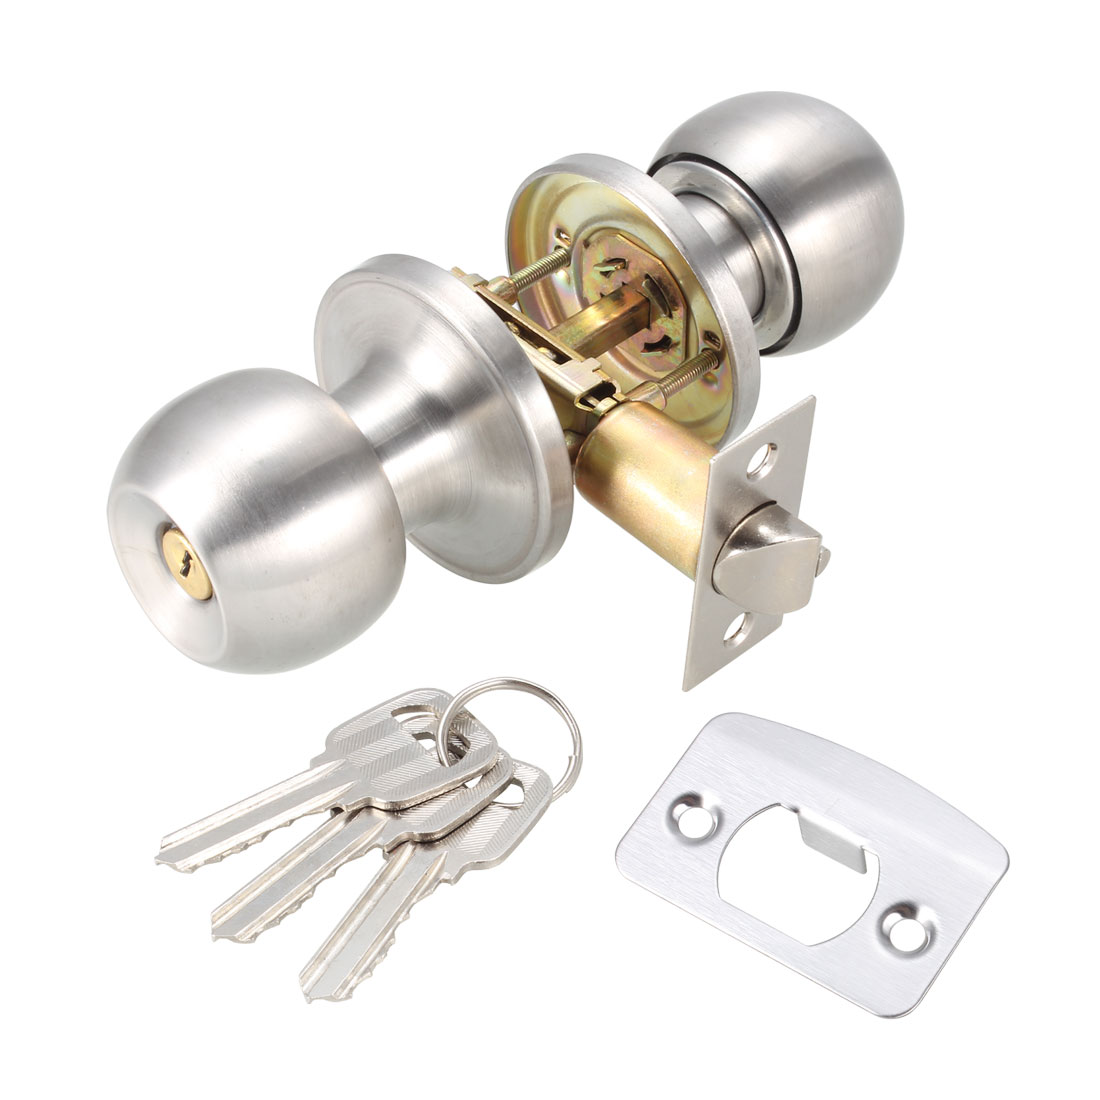 Bedroom Bathroom Keyed Oval Handle Round Door Knob Lock Locks Hardware